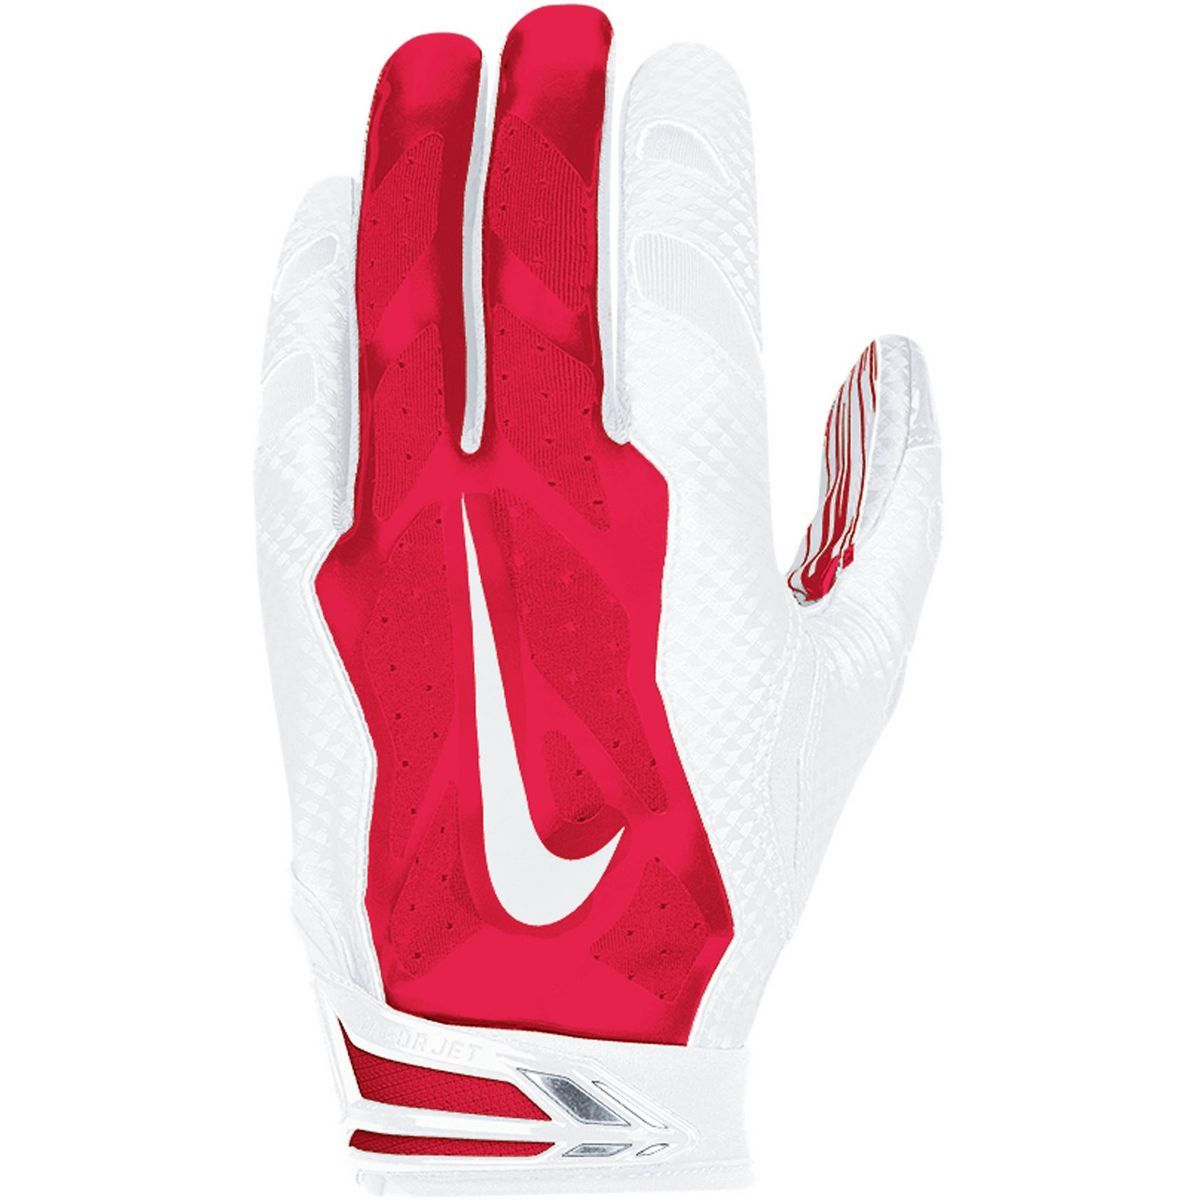 Nike Vapor Jet 3.0 American Football Gloves - American ...